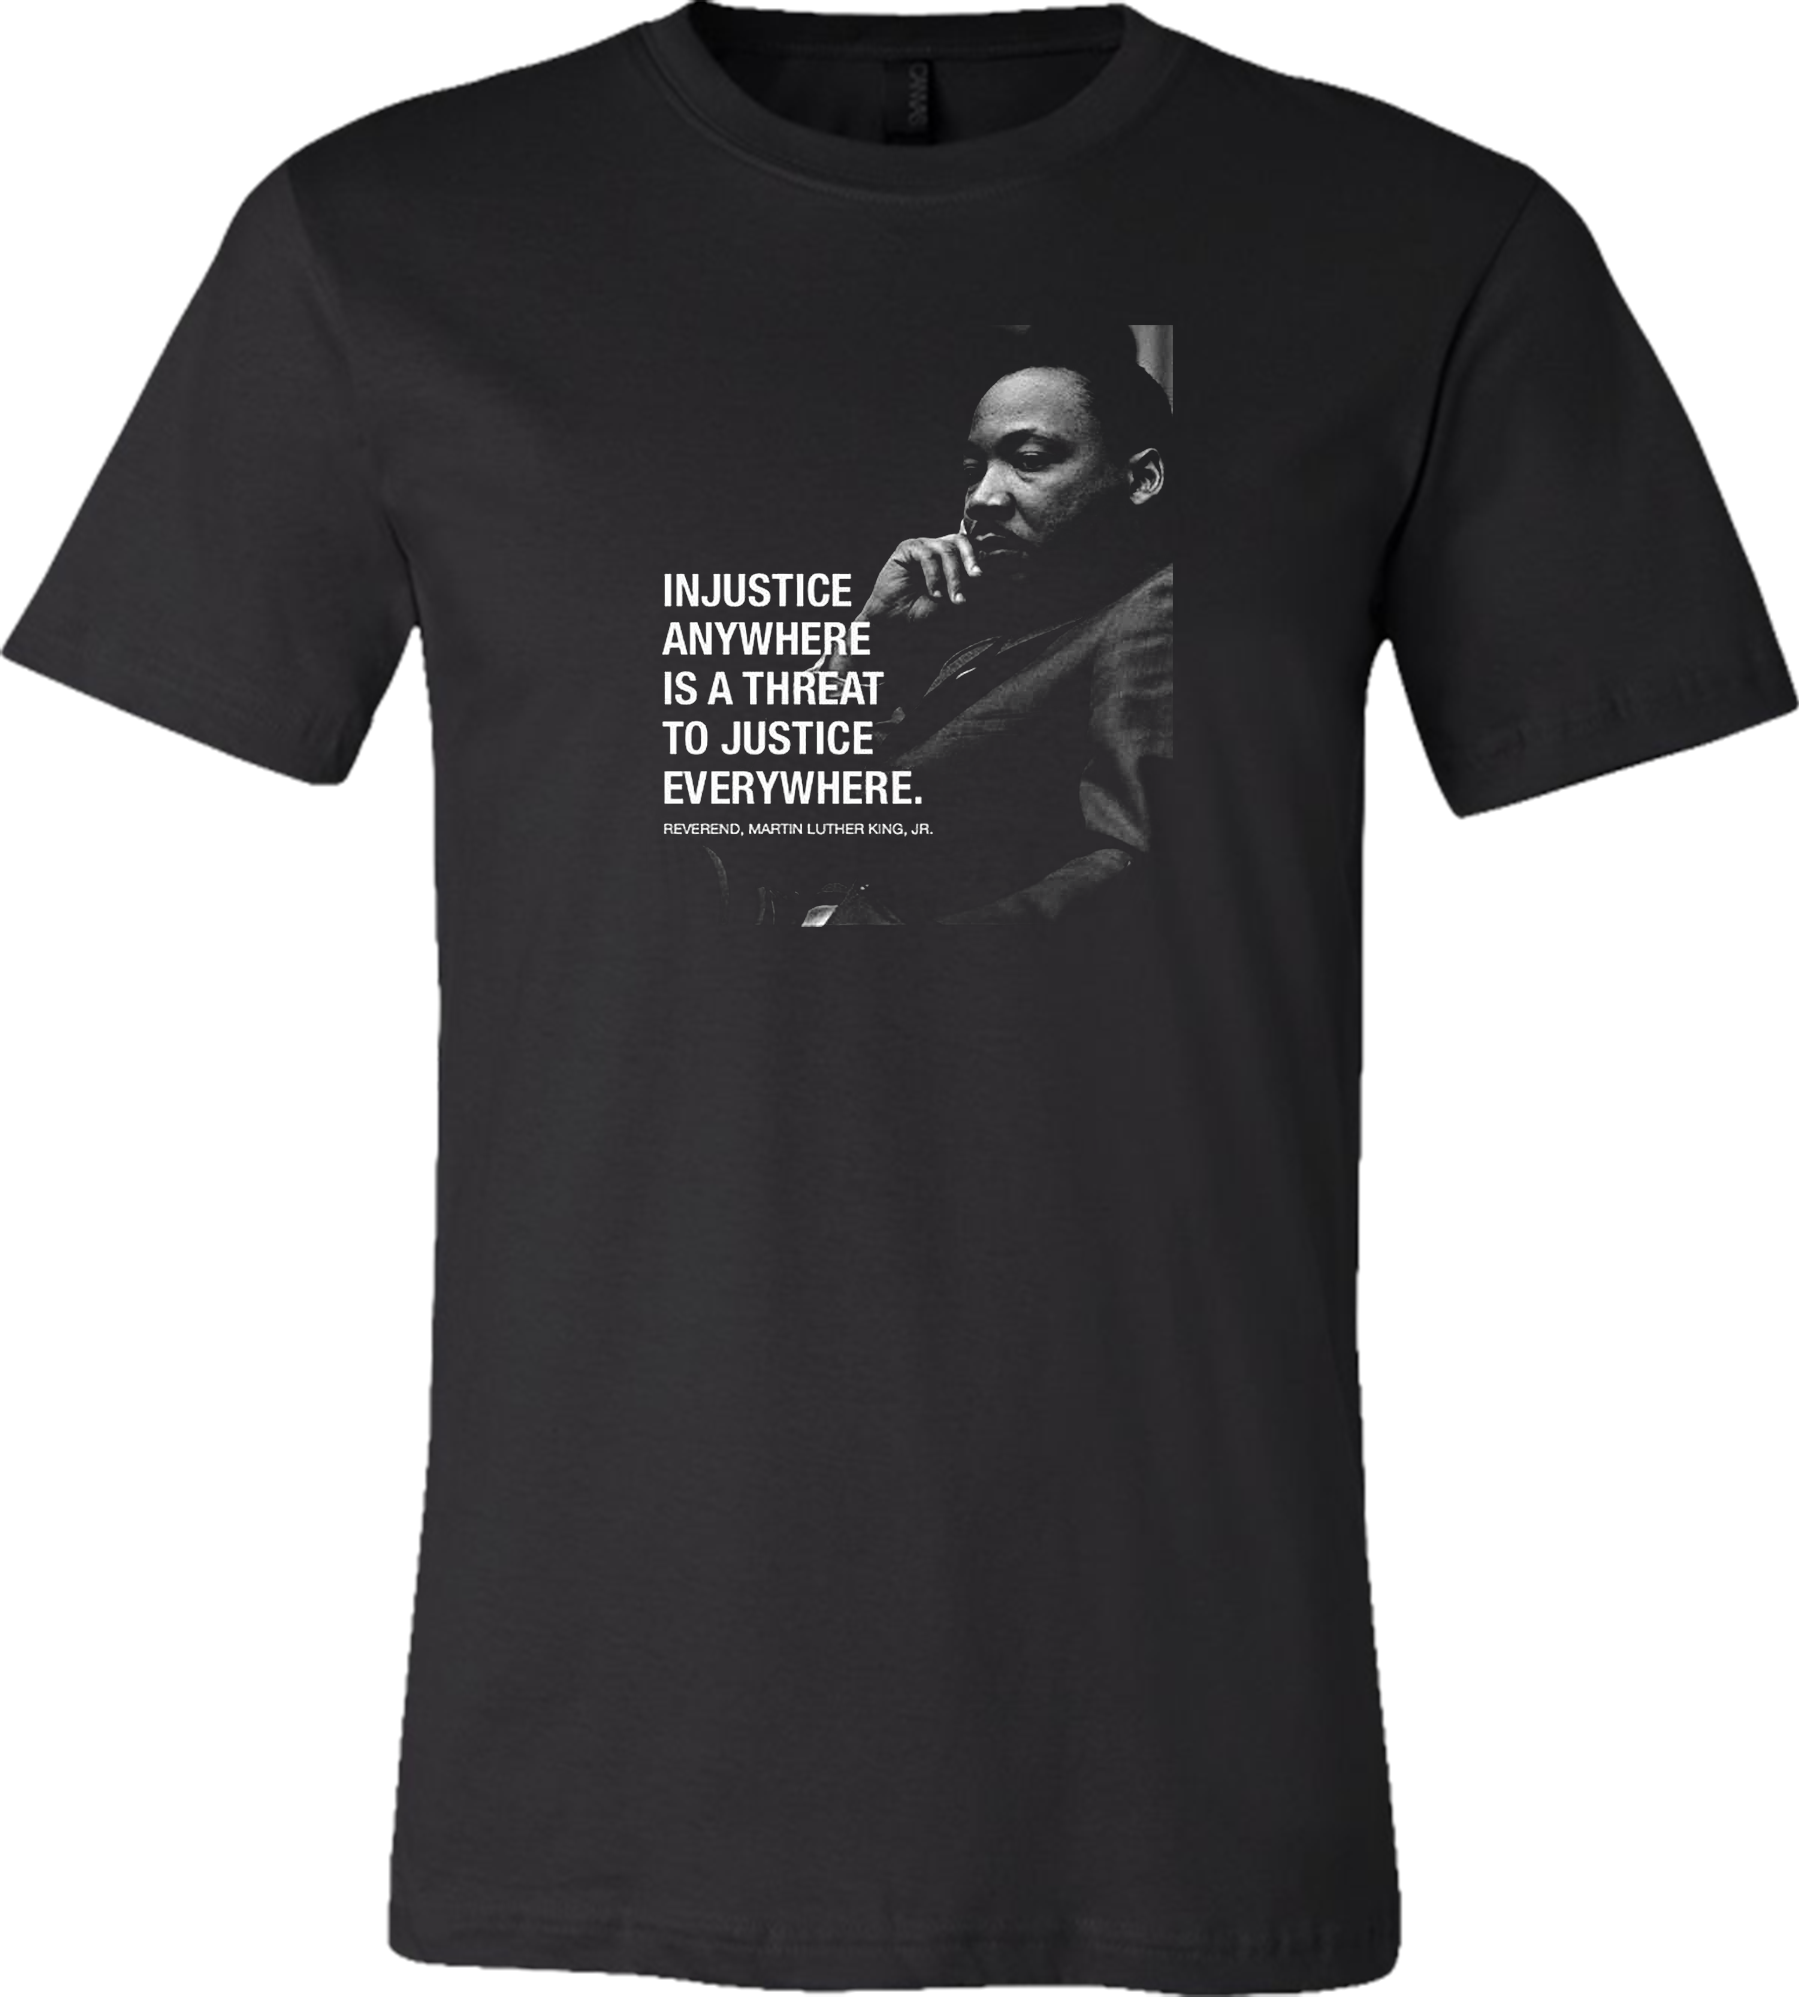 MLK Injustice Anywhere Is A Threat To Justice Everywhere